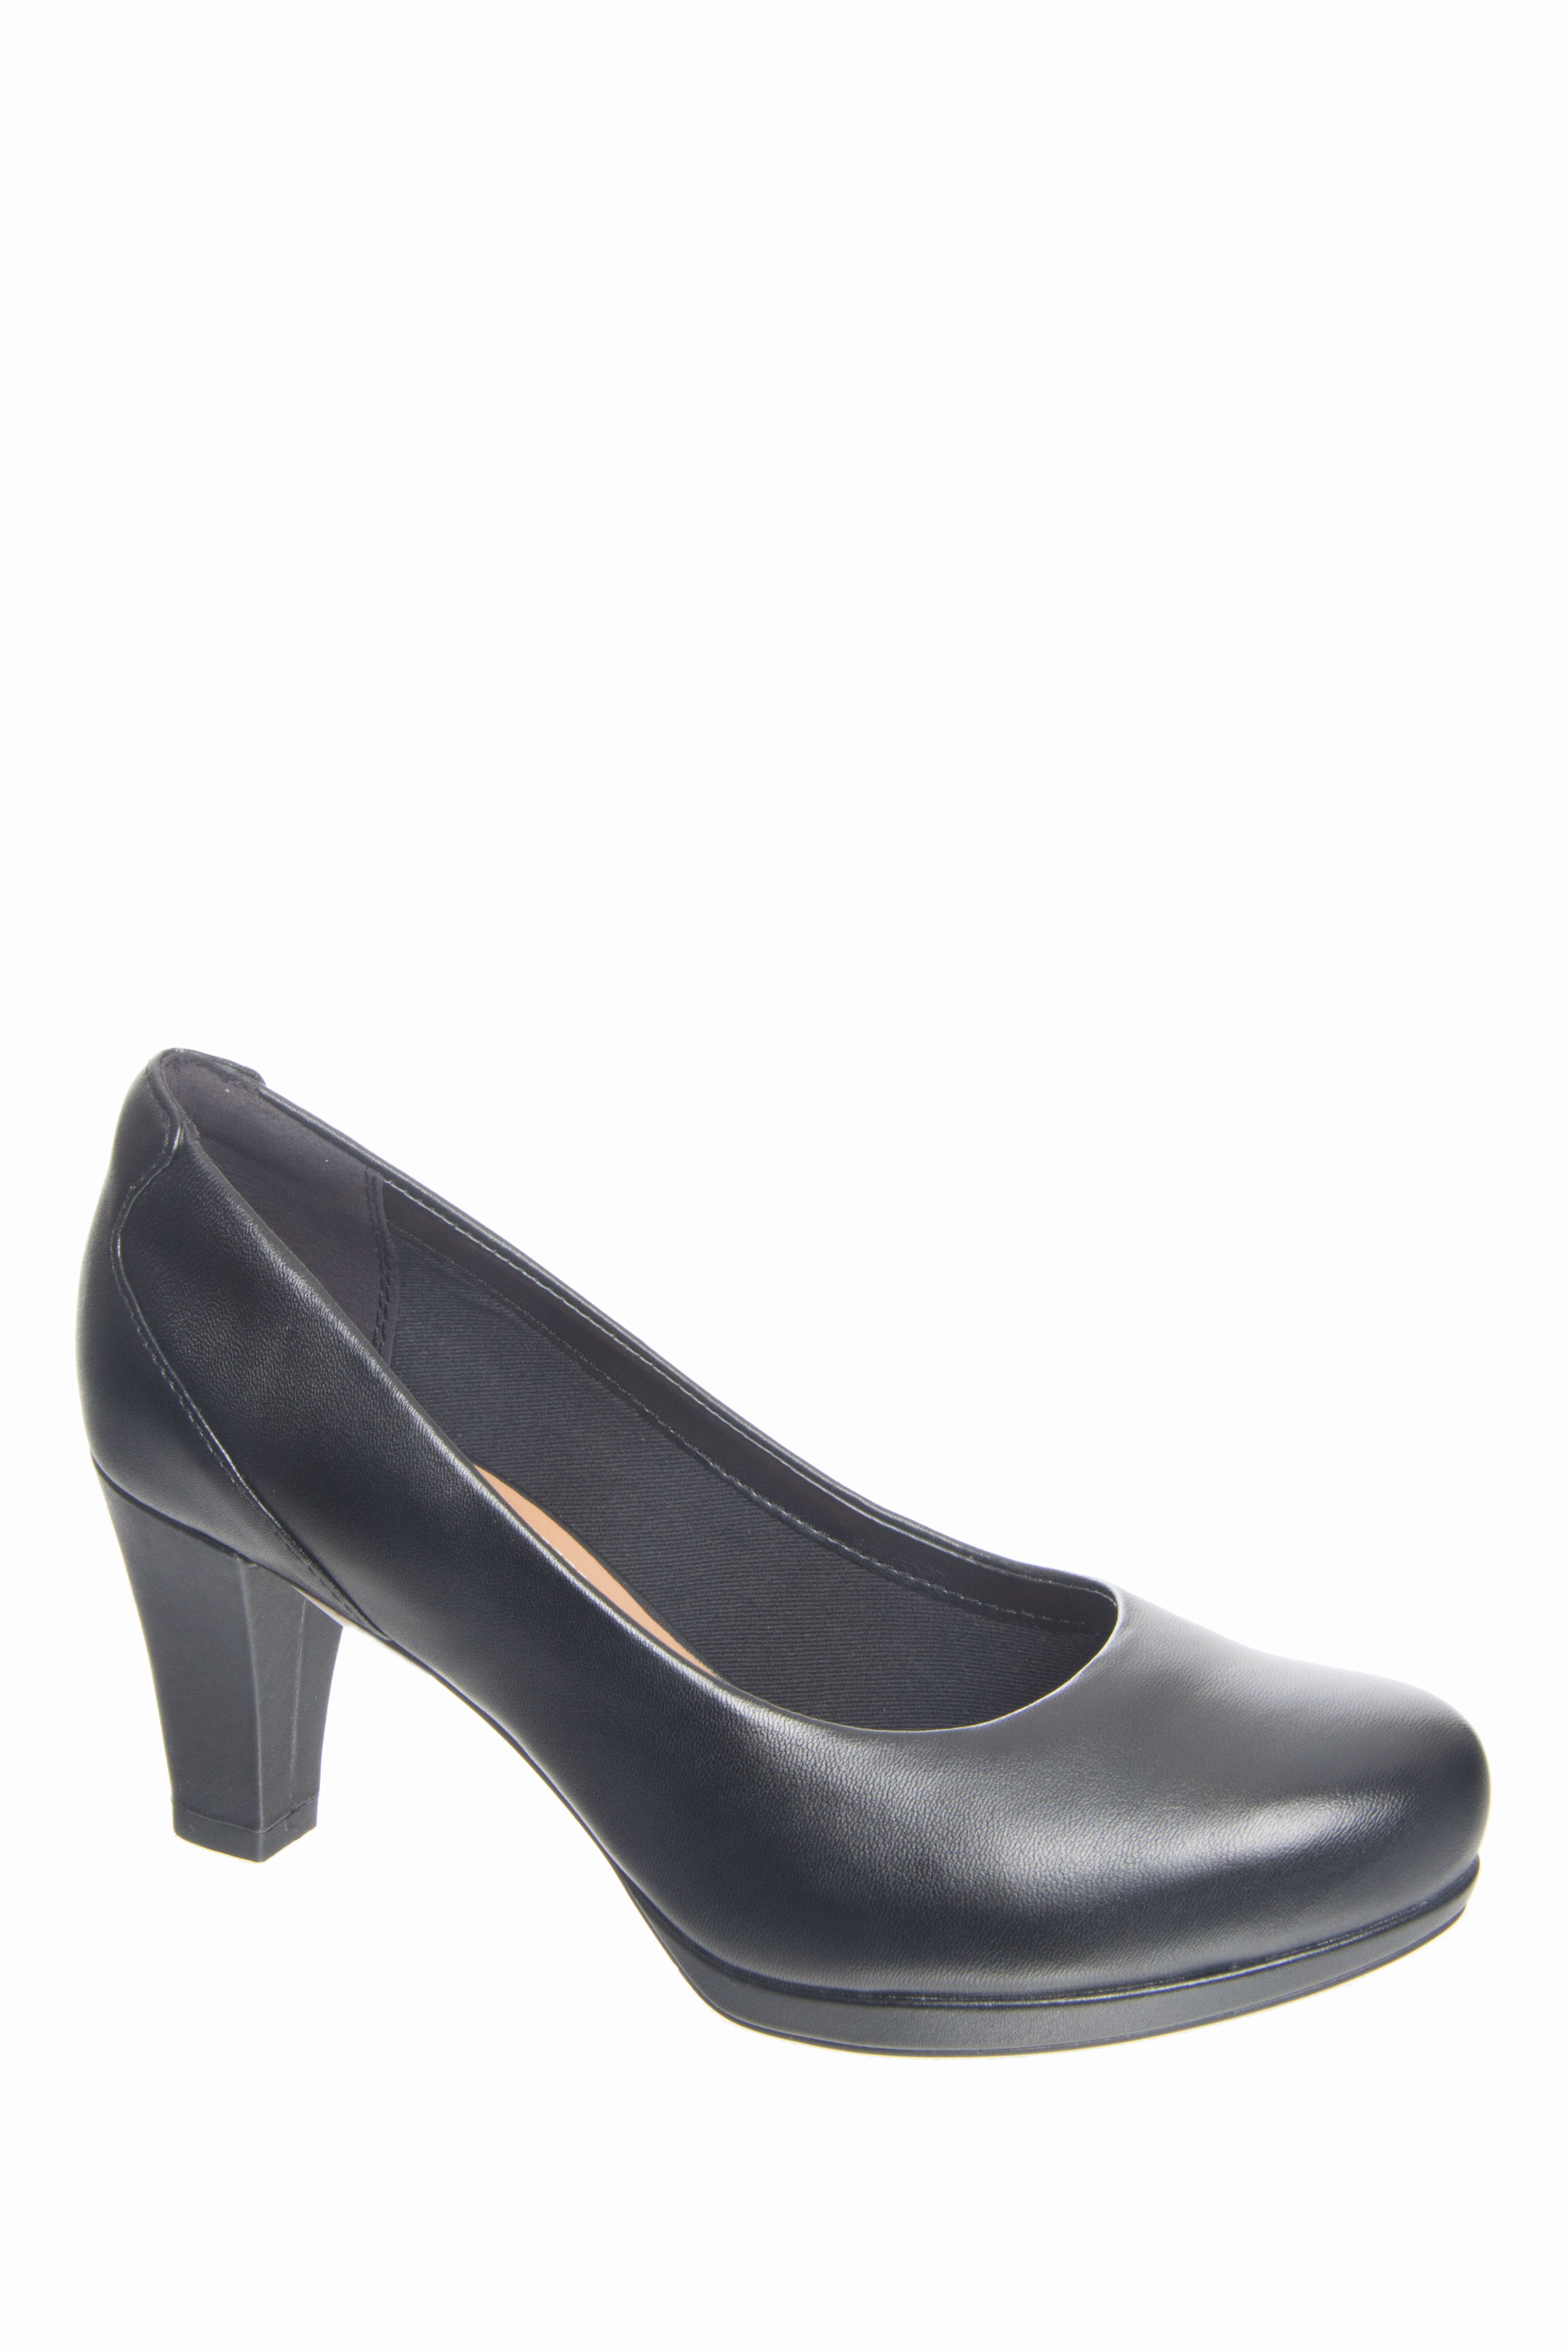 Clarks Chorus Chic Mid Heel Pointed Toe Pumps - Black